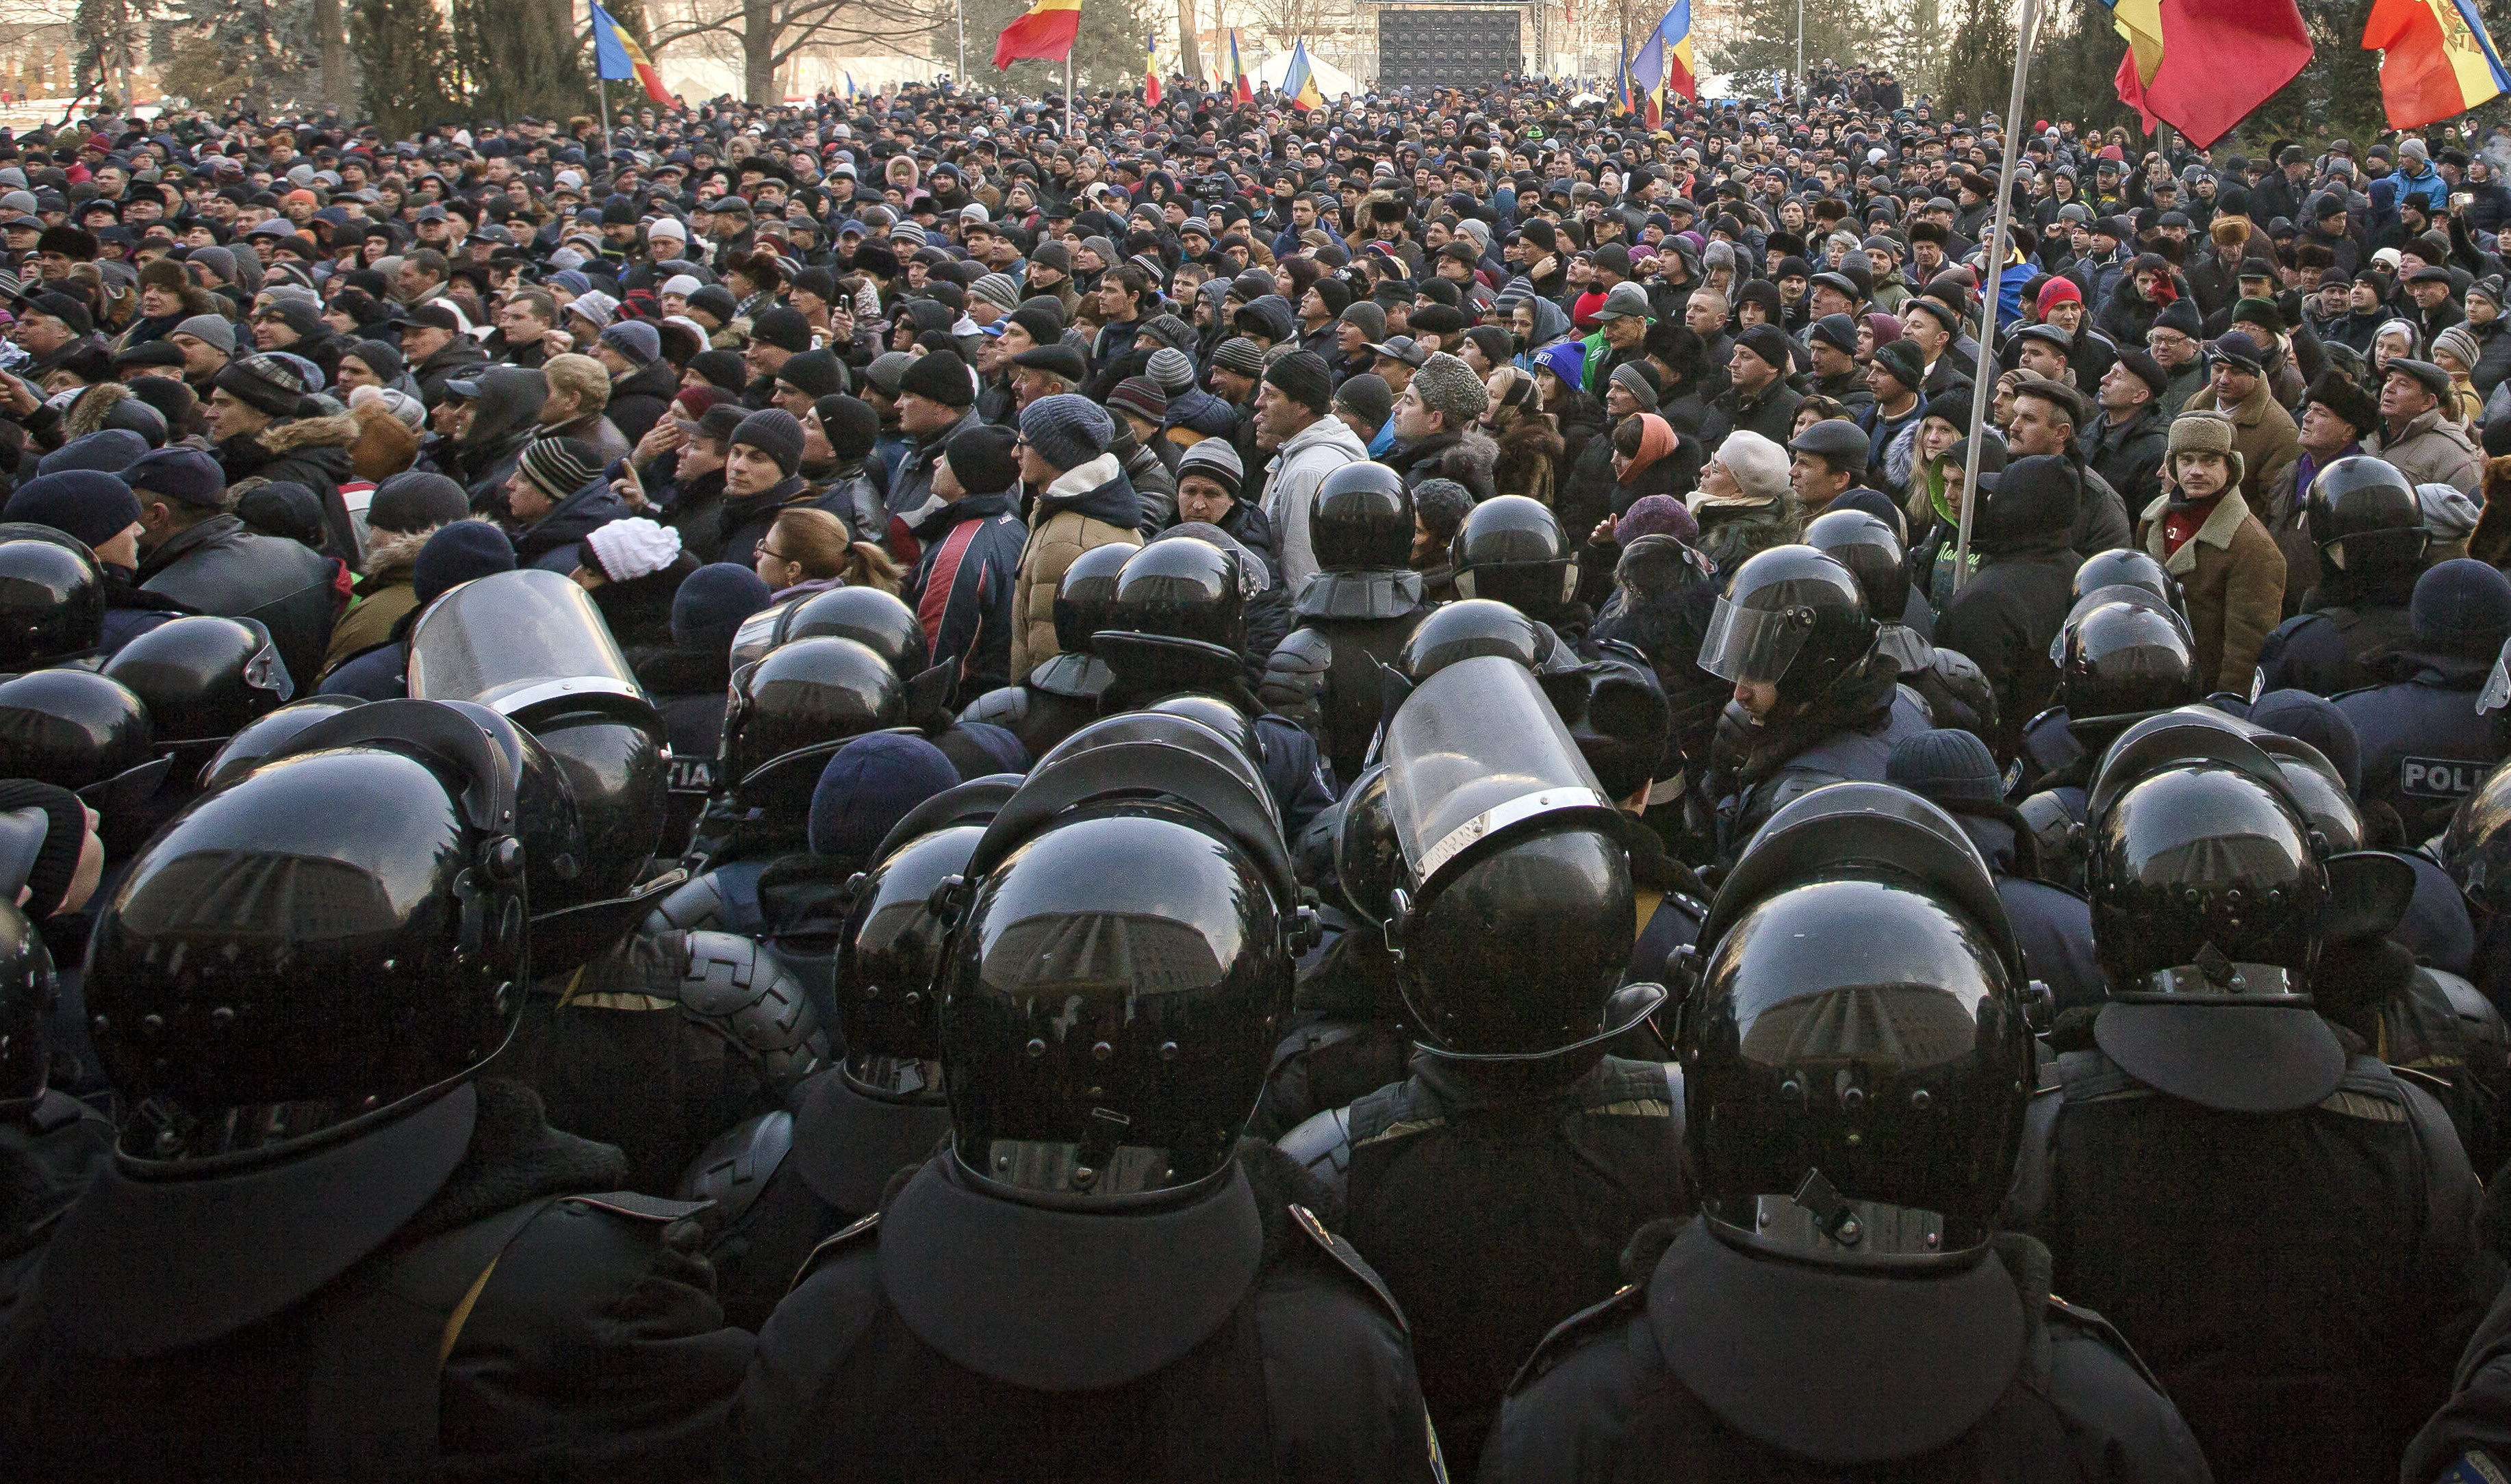 Riot police officers stand in line in front of protesters, some wanting closer links to Russia, others demanding a crackdown on corruption, outside the parliament in Chisinau, Moldova, Thursday, Jan. 21, 2016. The country has faced regular protests since early 2015.